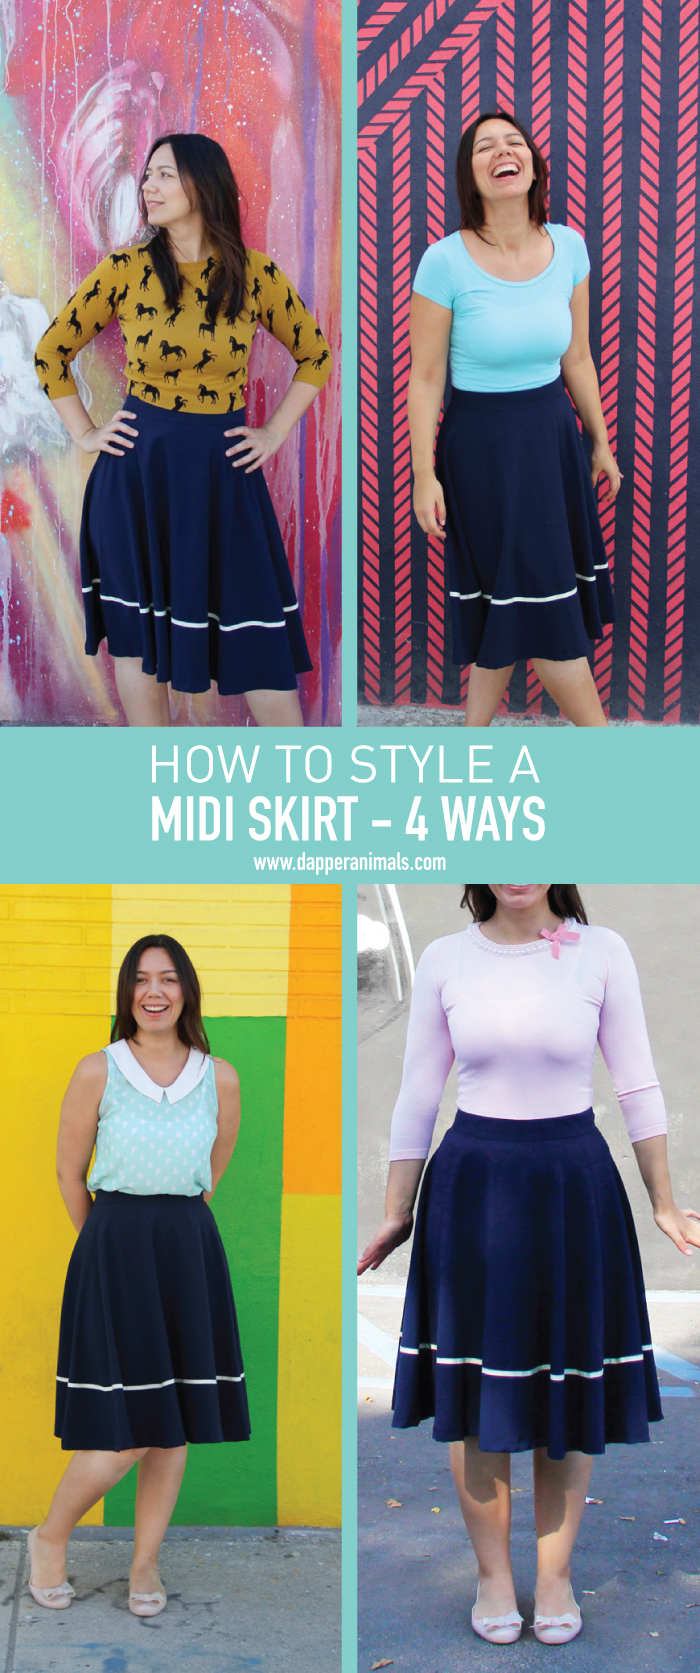 How To Style A Midi Skirt 4 Different Ways